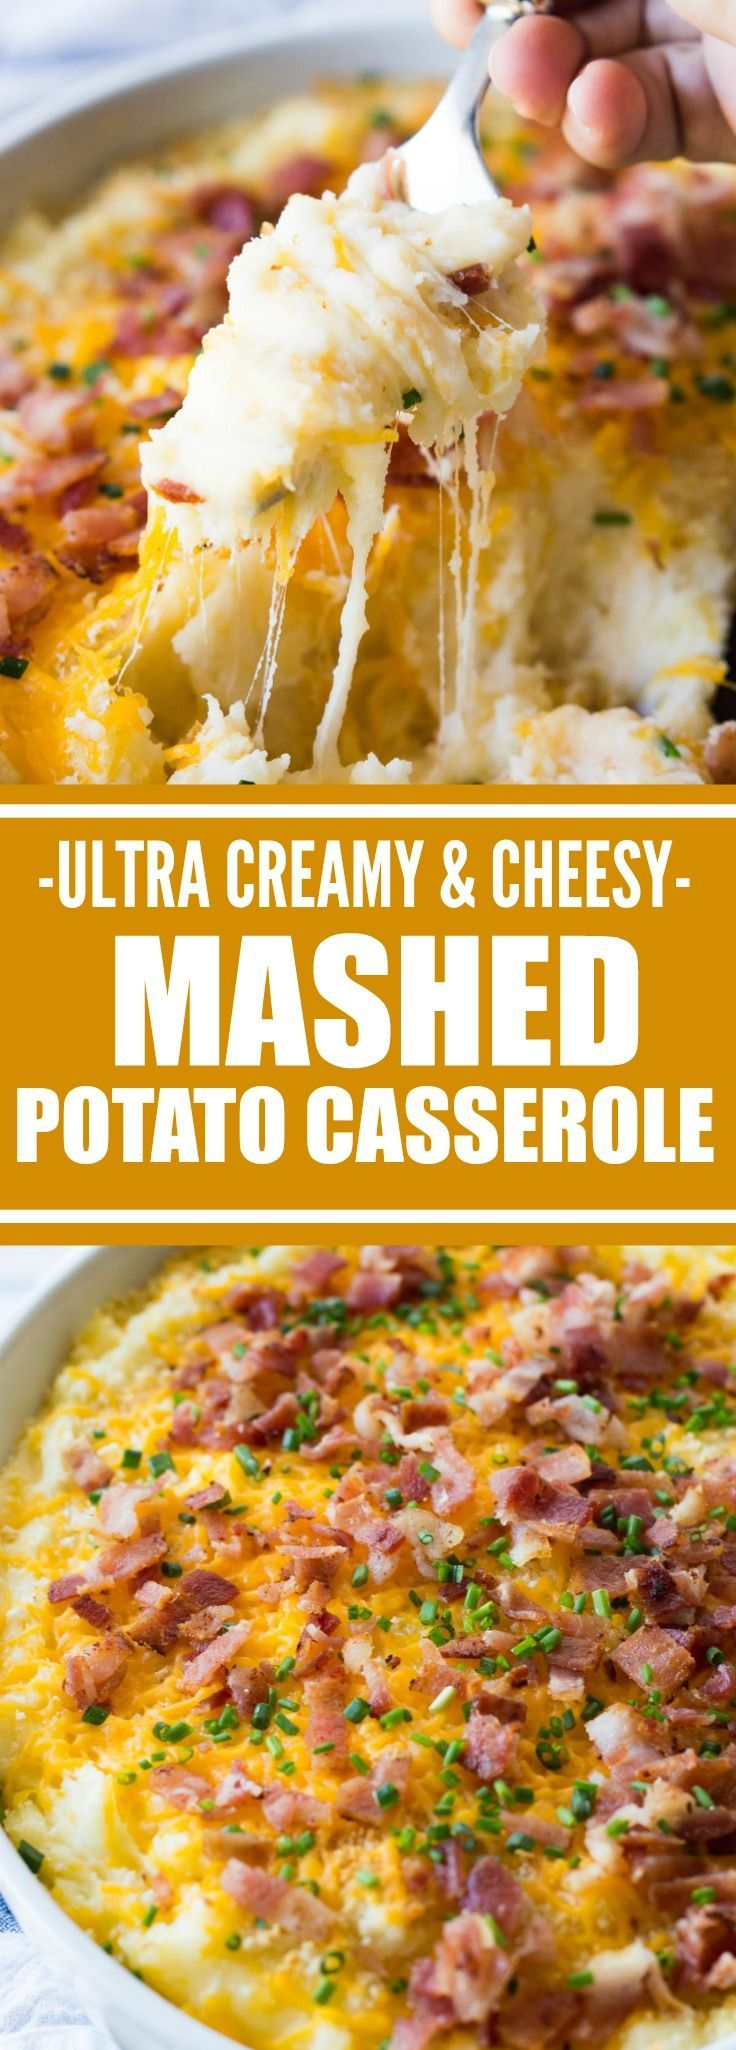 Potato Casserole. The creamiest, cheesiest mashed potatoes EVER!  This easy to make side dish is loaded up with extra melty cheese, crispy bacon, and chives.  The best part?  You can make this dish ahead of time and then just pop it in the oven to heat back up!  This dish will end up being the highlight of any meal!